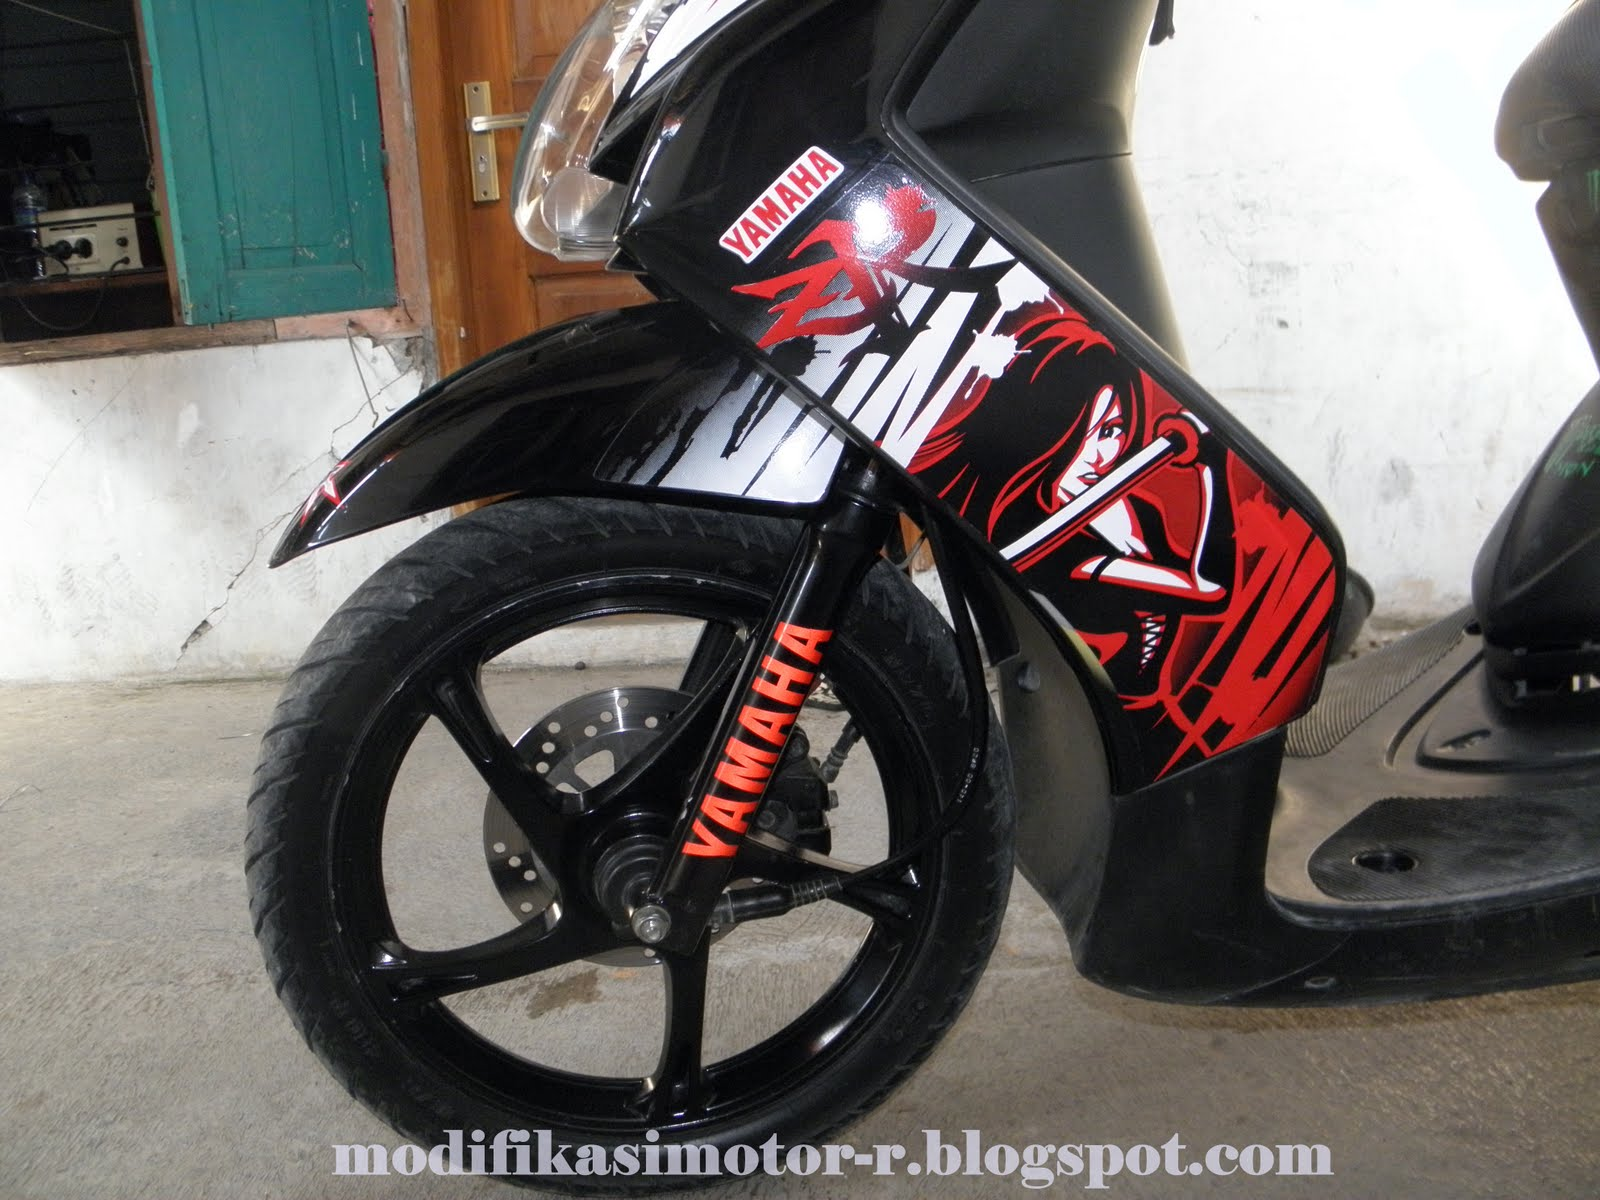 Modifikasi Motor-R